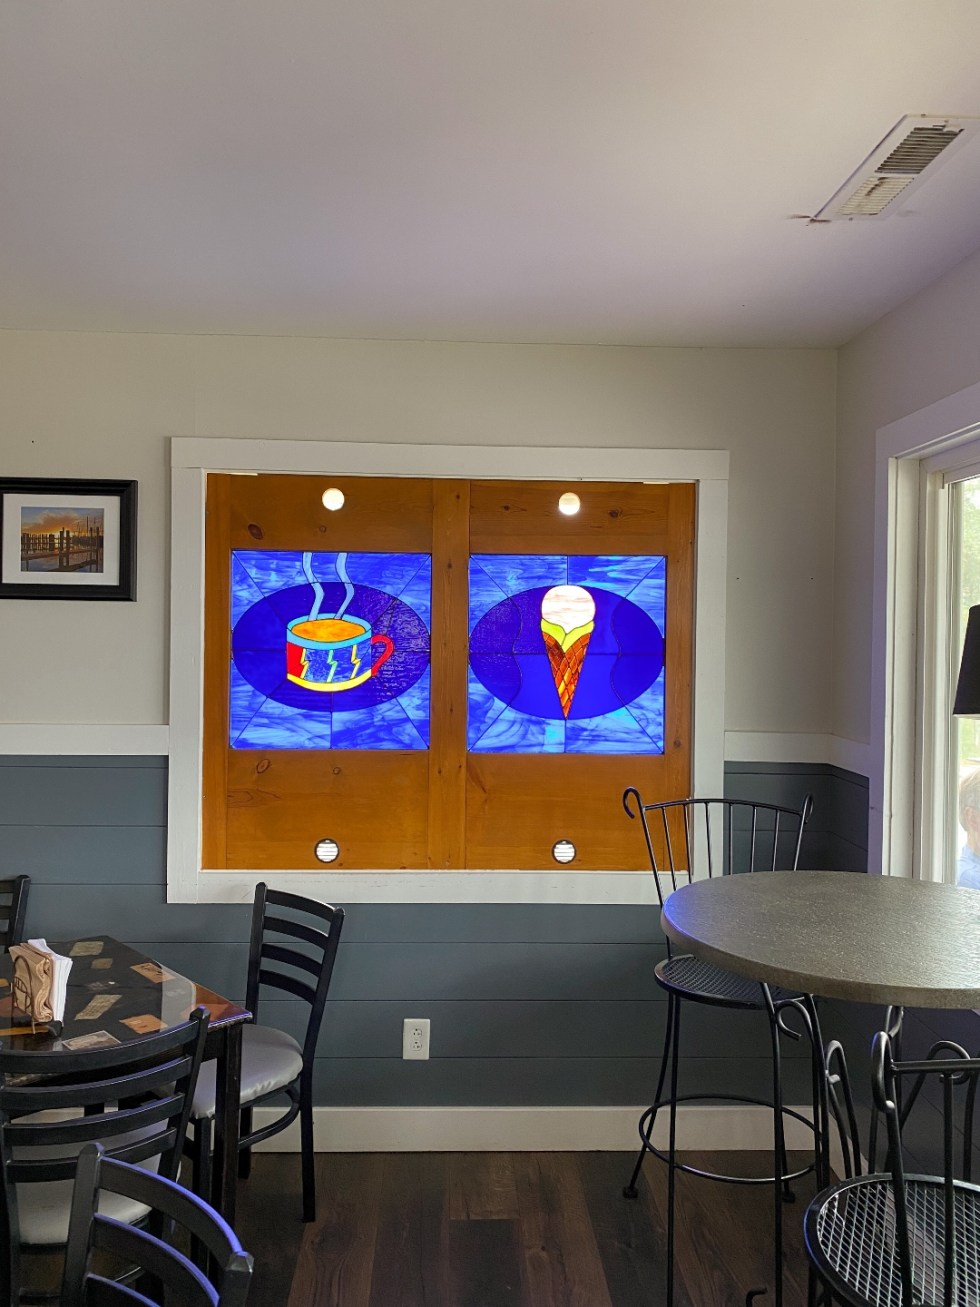 What to Do in Oriental, NC - I'm Fixin' To - @imfixintoblog | Things to do in Oriental NC by popular NC travel blog, I'm Fixin' To: image of a blue stain glass window with a image of a coffee cup and a ice cream cone.